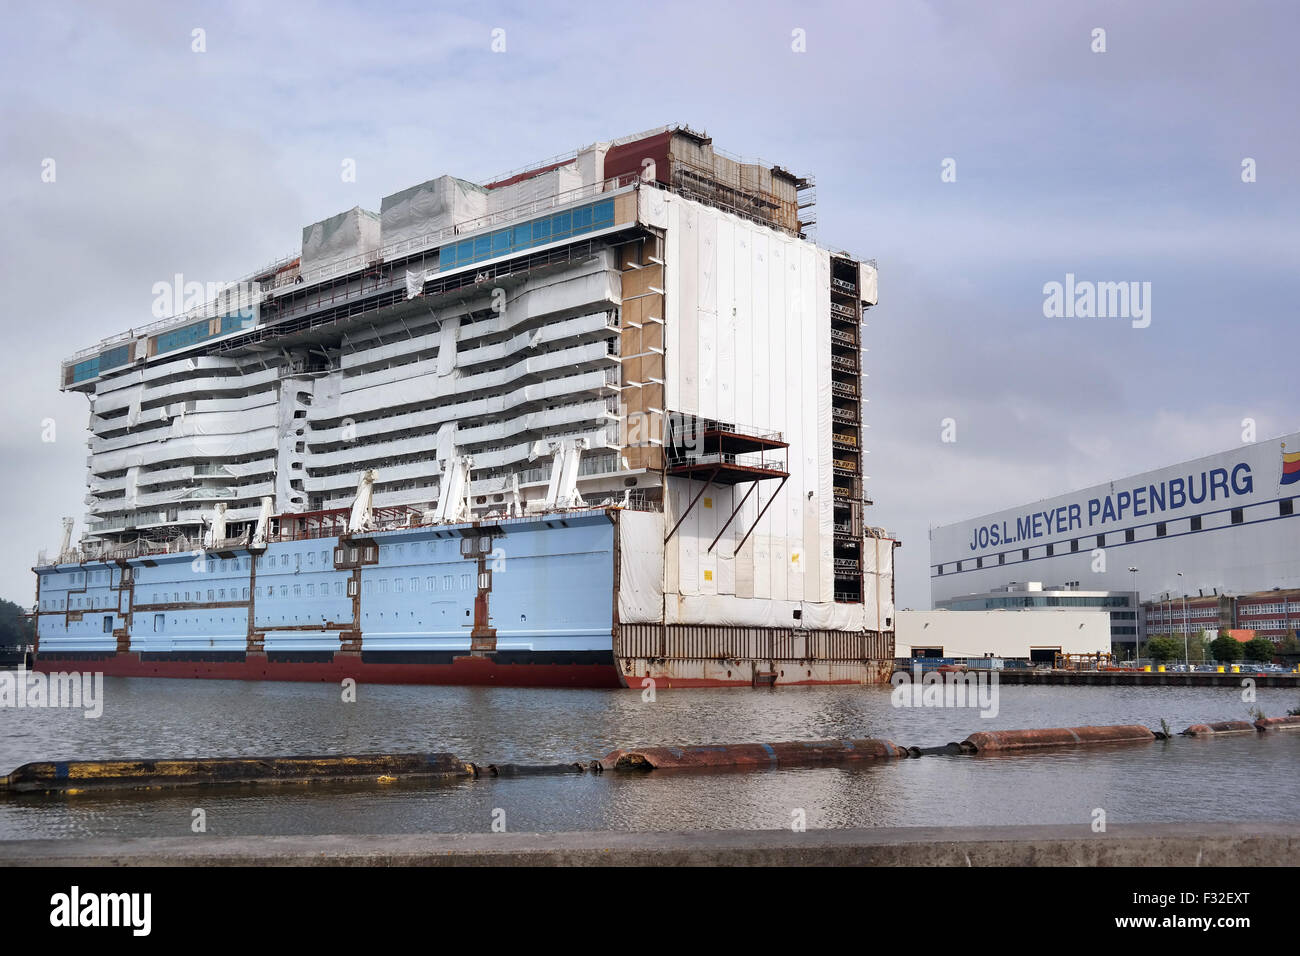 Part of a luxury passenger ship under construction on the Meyer Werft in Papenburg Stock Photo